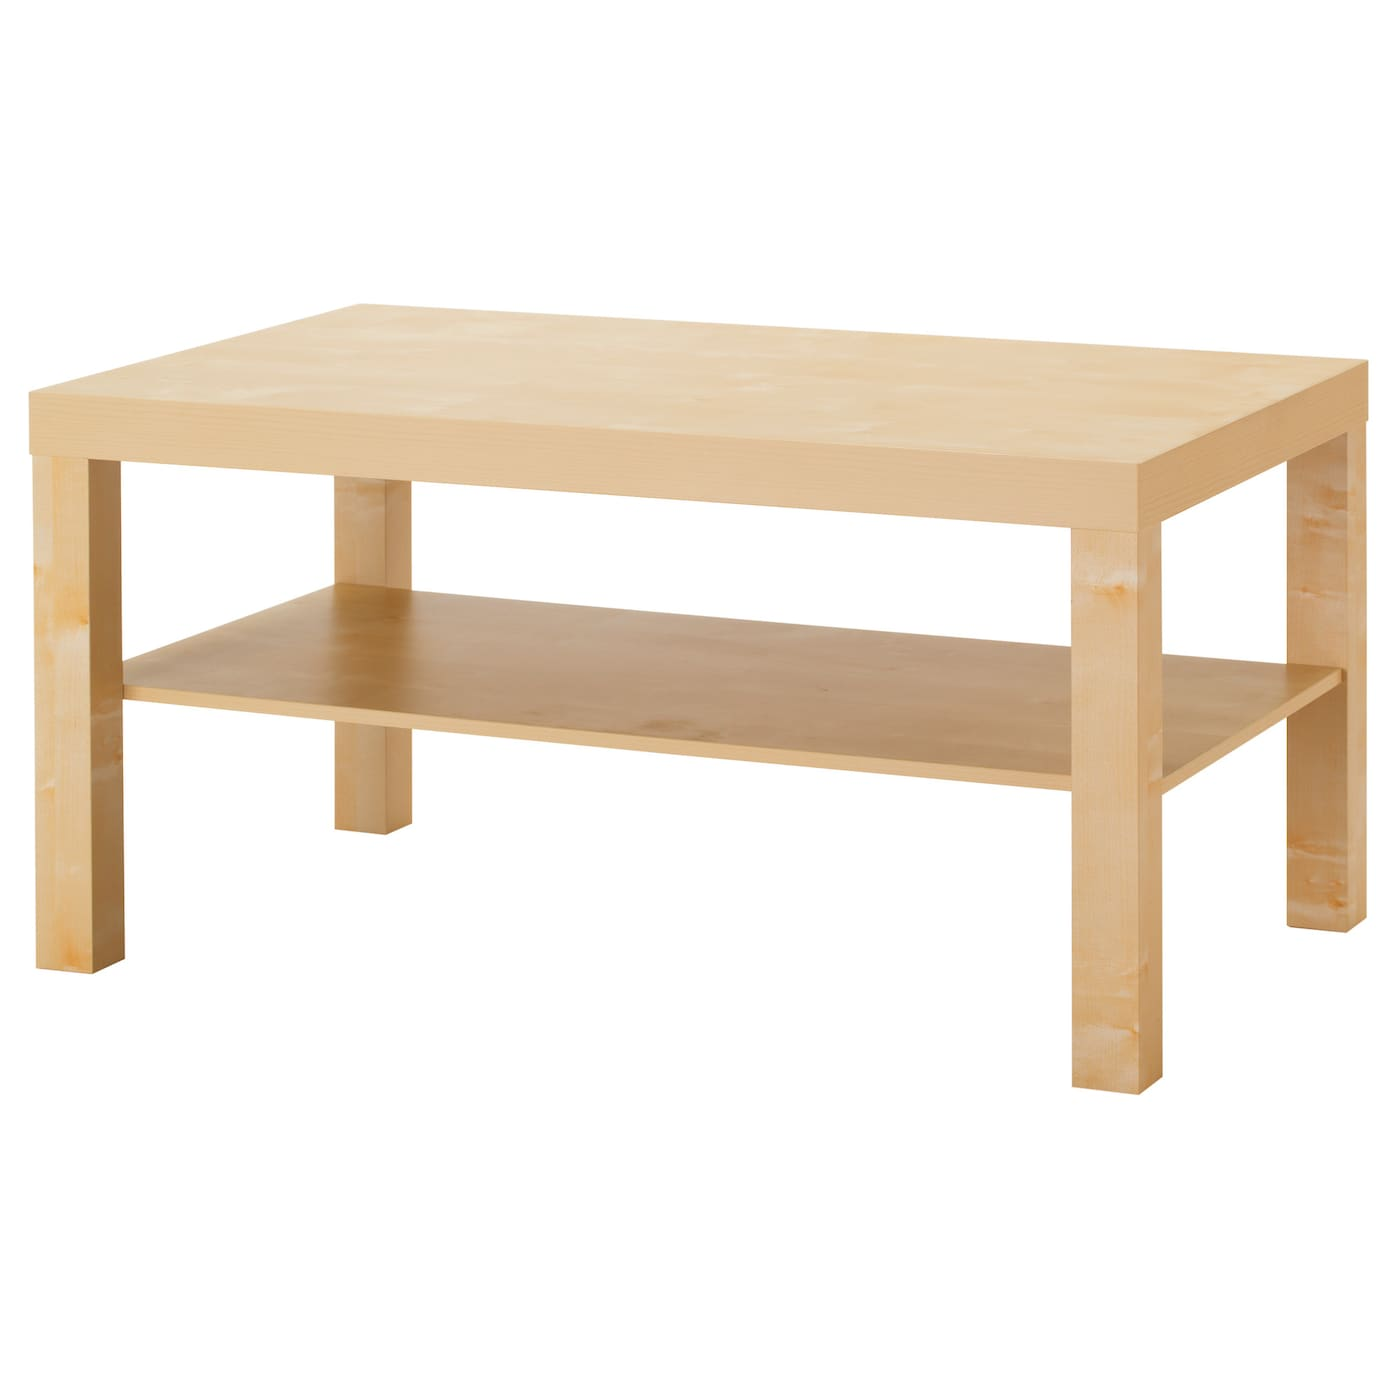 Lack coffee table birch effect 90 x 55 cm ikea for Base de table ikea